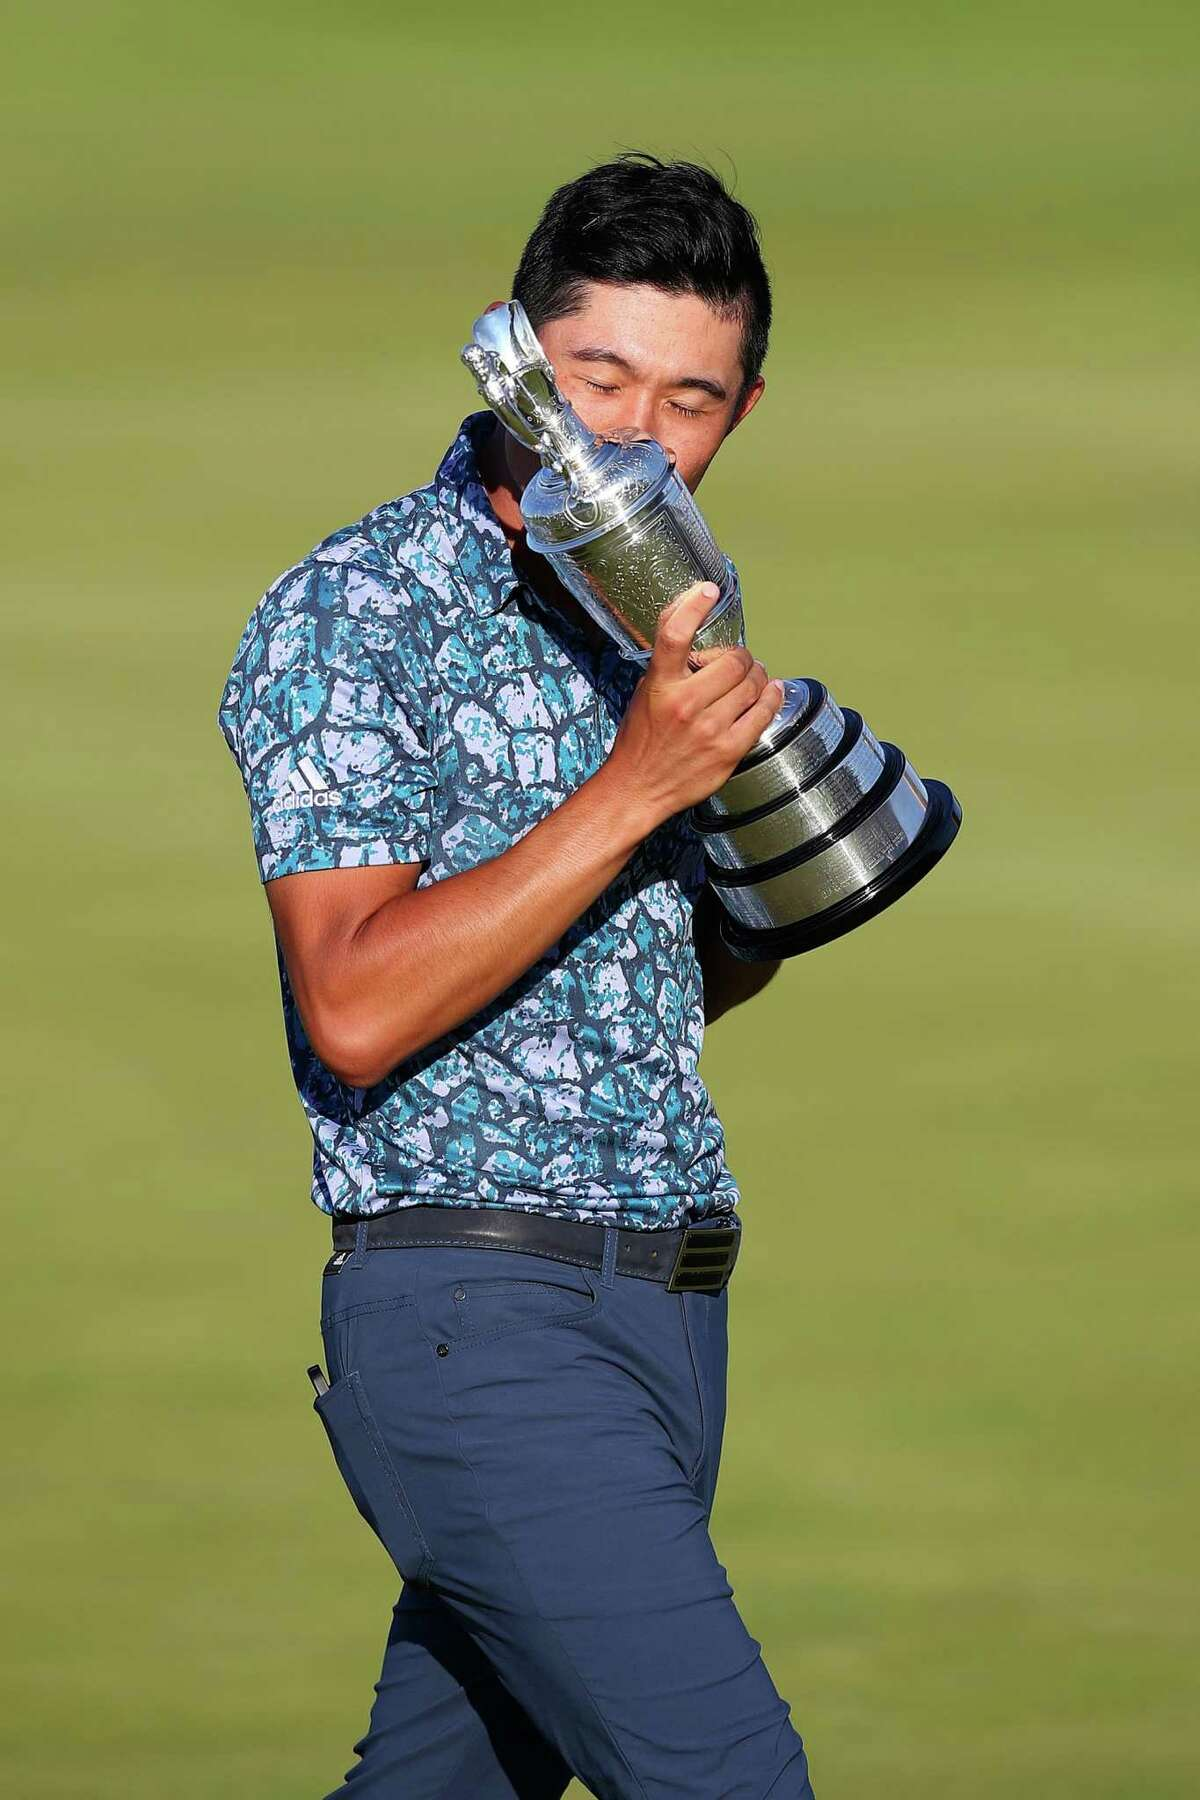 SANDWICH, ENGLAND - JULY 18: Open Champion, Collin Morikawa of United States celebrates with the Claret Jug on the 18th hole during Day Four of The 149th Open at Royal St George's Golf Club on July 18, 2021 in Sandwich, England. (Photo by Christopher Lee/Getty Images)